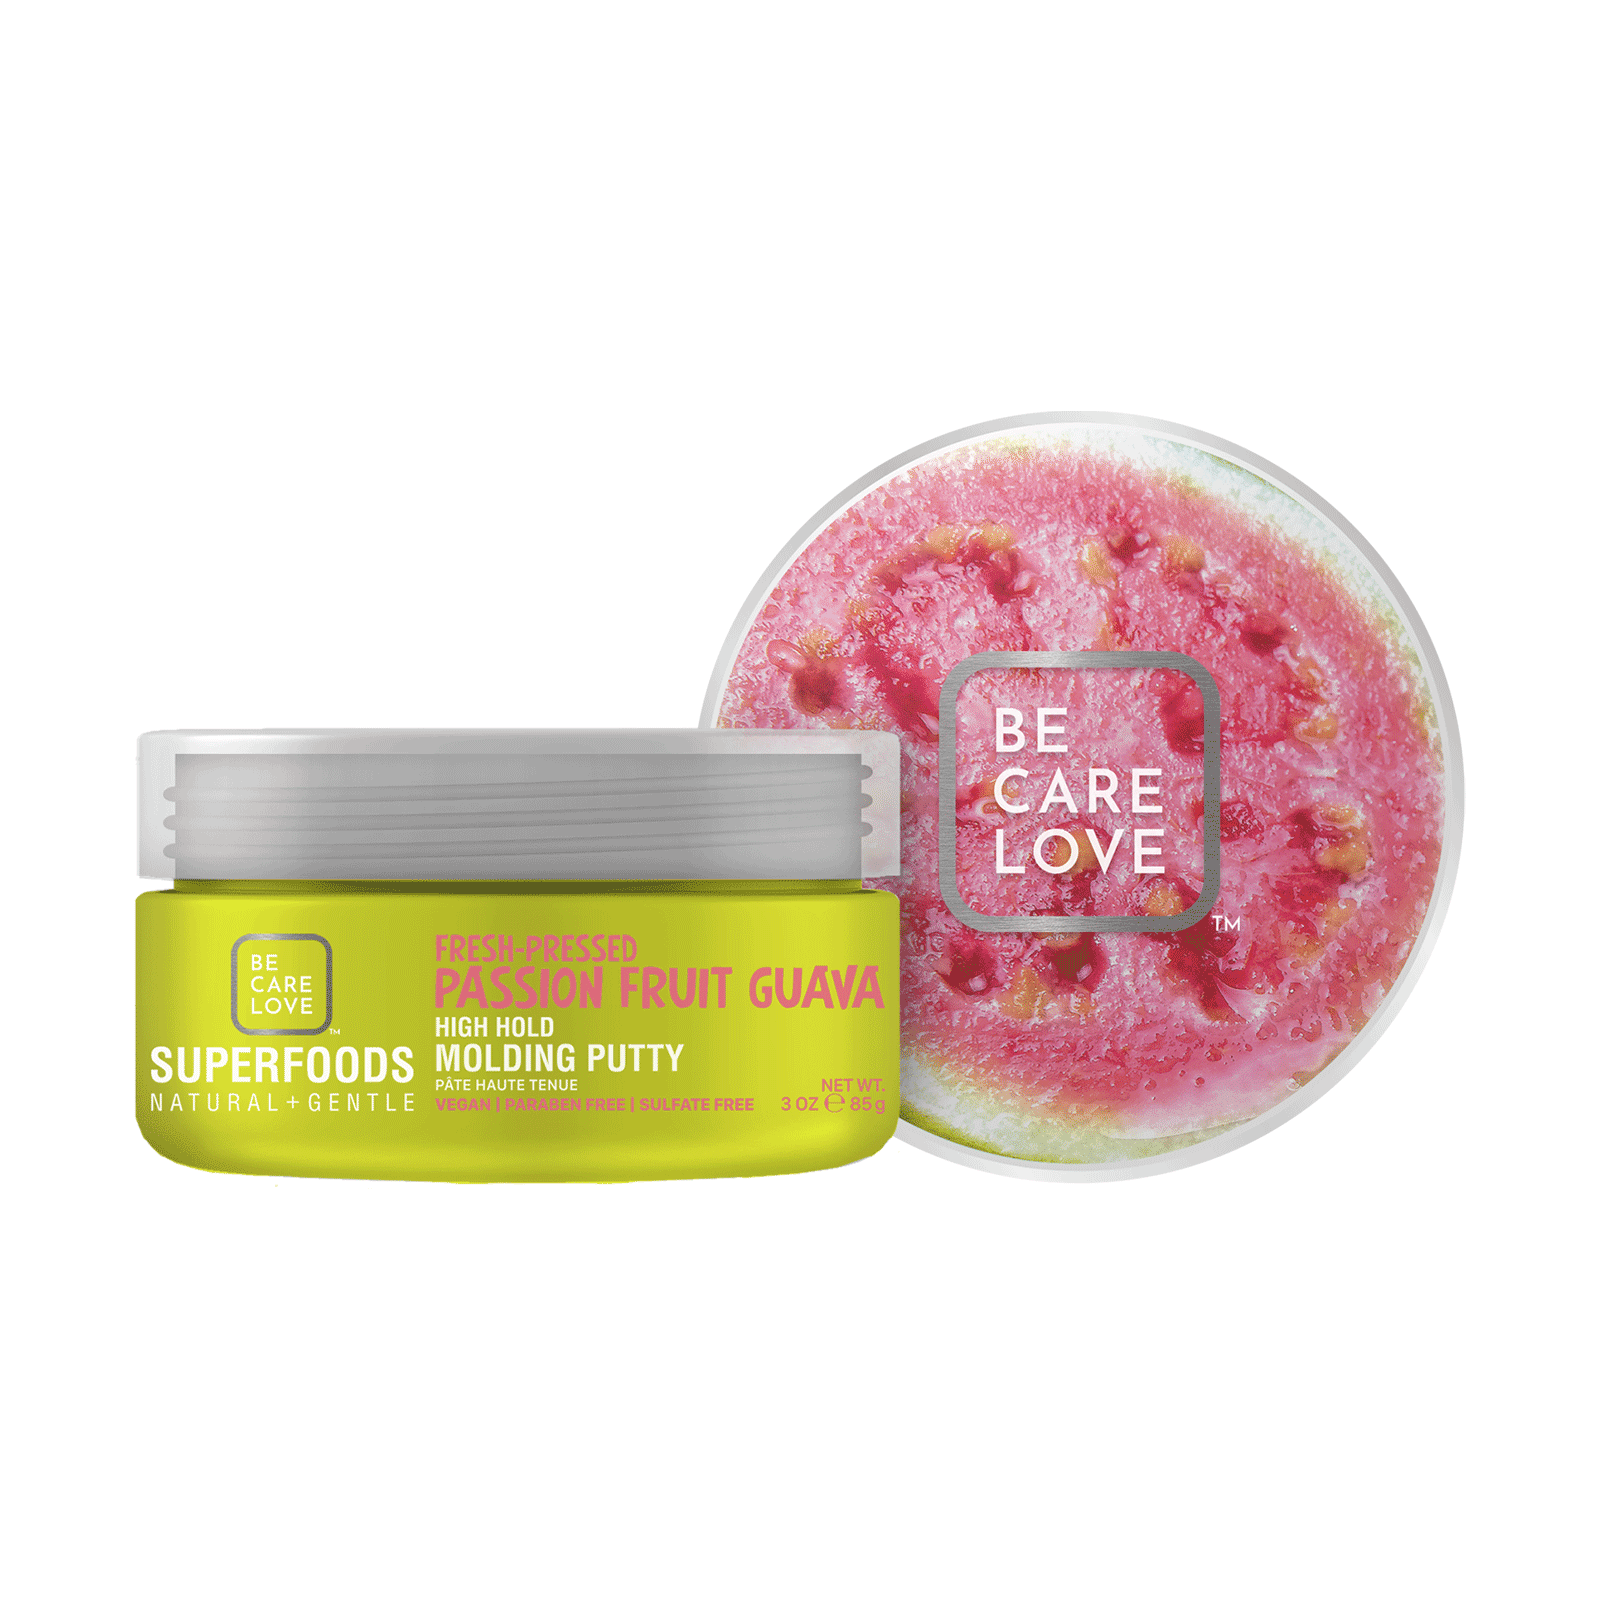 Fresh-Pressed Passion Fruit Guava High Hold Molding Putty